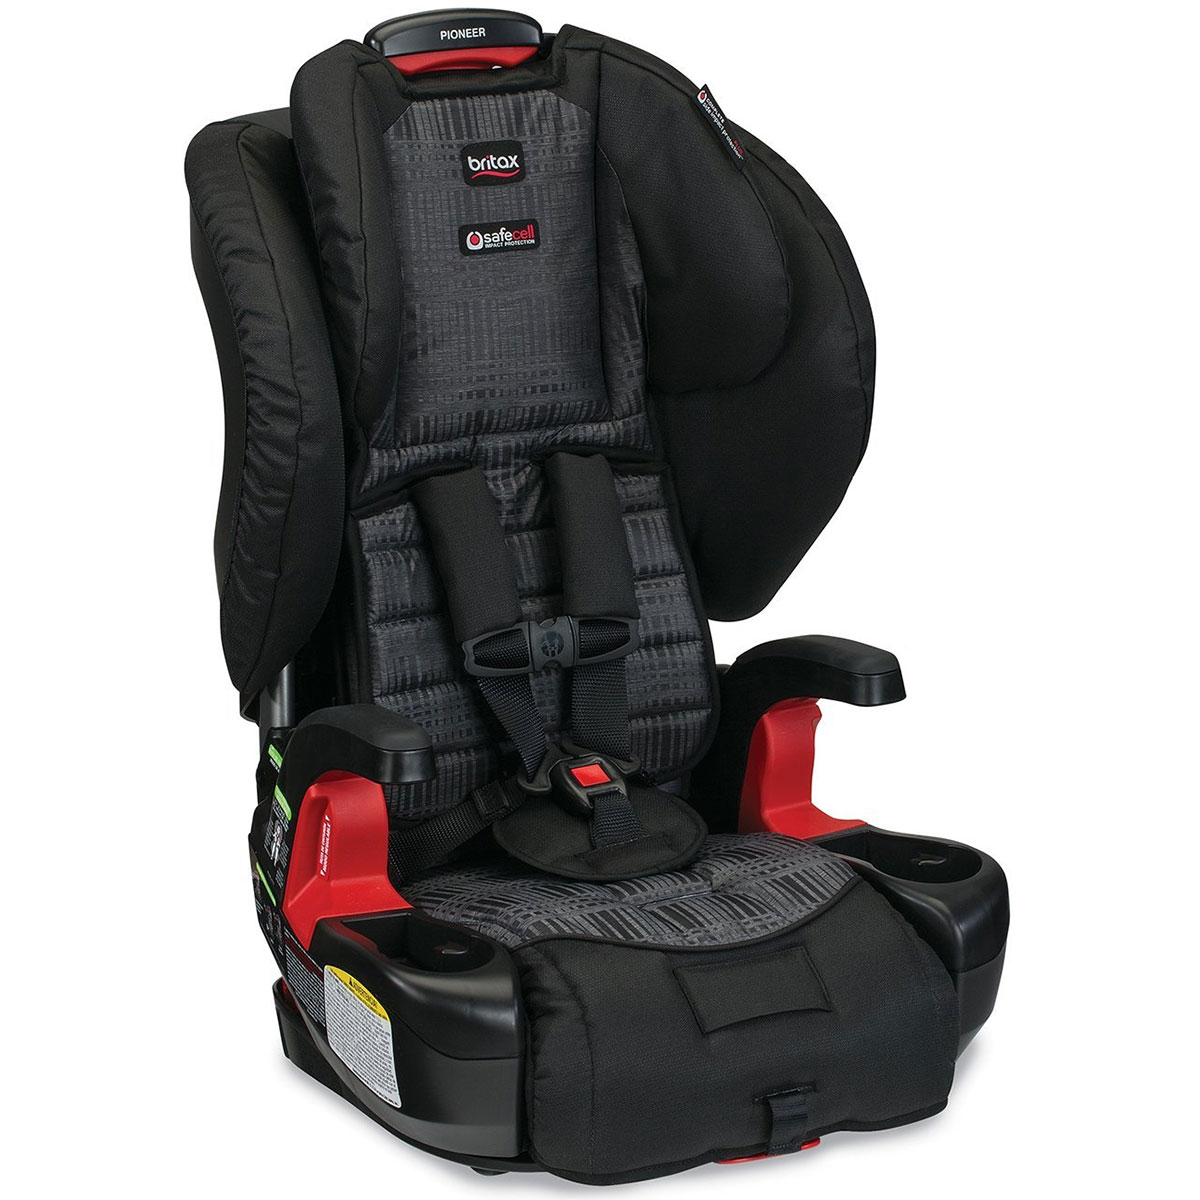 Britax Pioneer G1.1 Harness Booster Car Seat - Domino